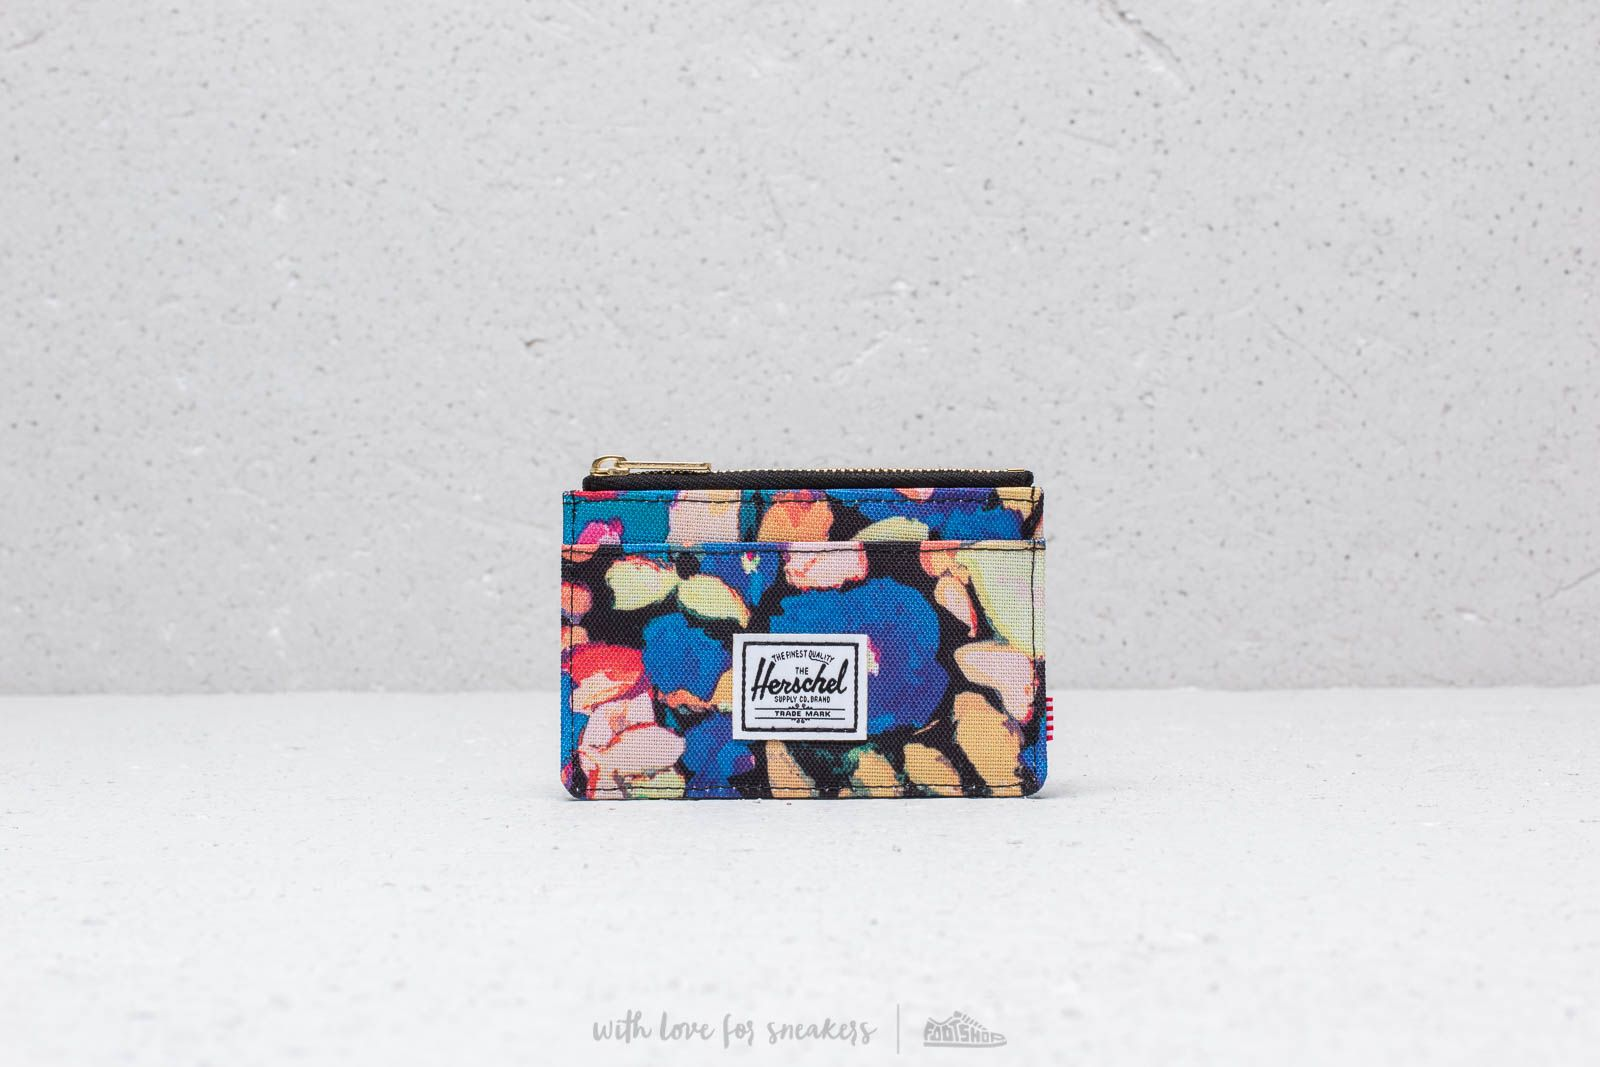 d50cba2f85538 Herschel Supply Co. Oscar Wallet Painted Floral at a great price 29 €  bestell bei